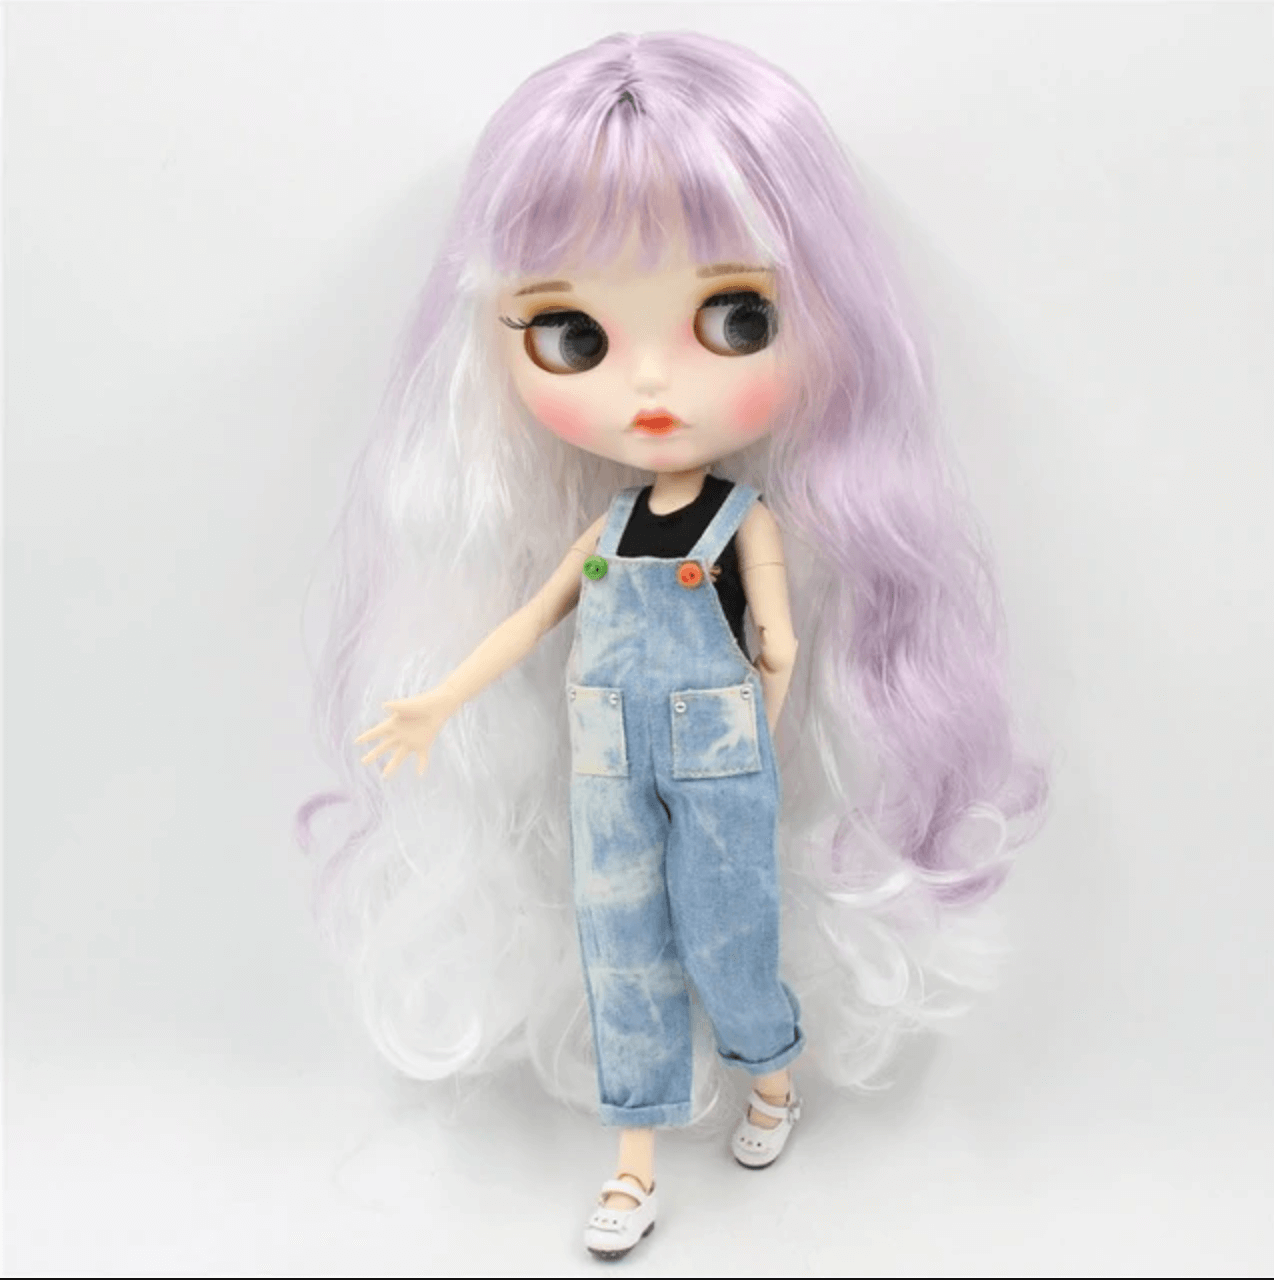 Premium Custom Neo Blythe Doll with Full Outfit 27 Combo Options 34